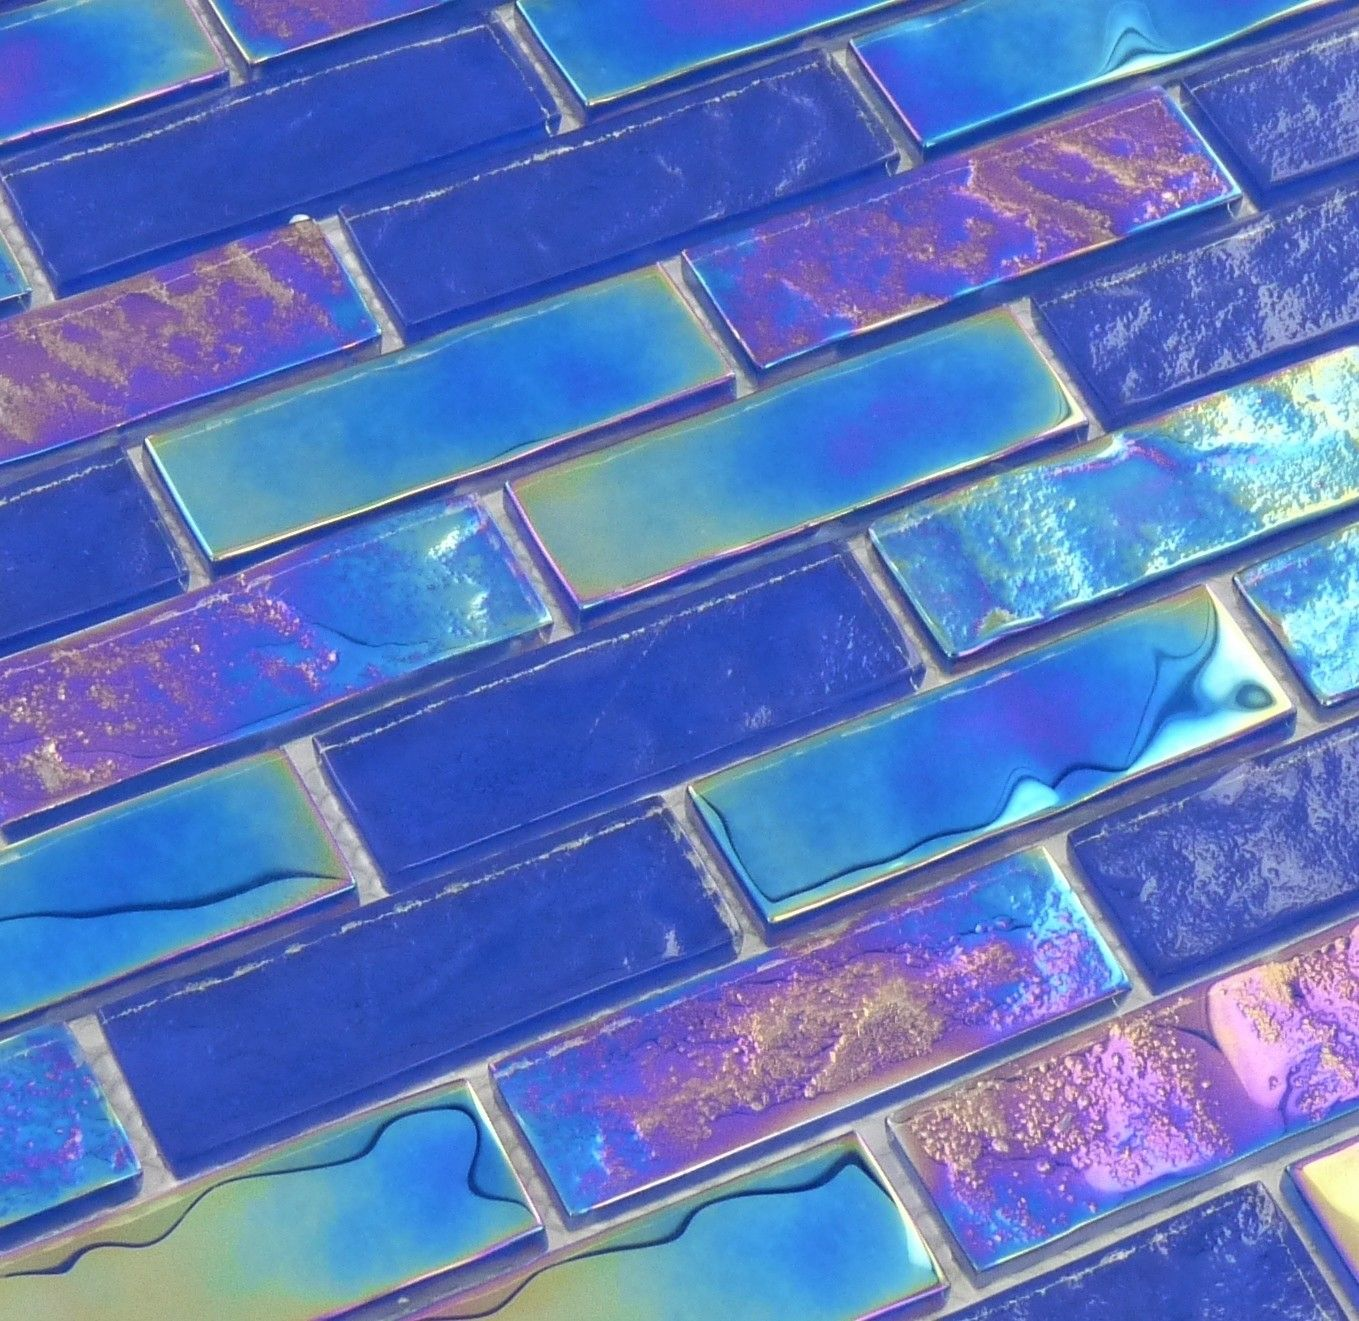 Tesoro Naval Blue 1 X 3 Glossy Iridescent Glass Tile Tasnautnaval13 Iridescent Glass Tiles Mermaid Tile Floor Colors